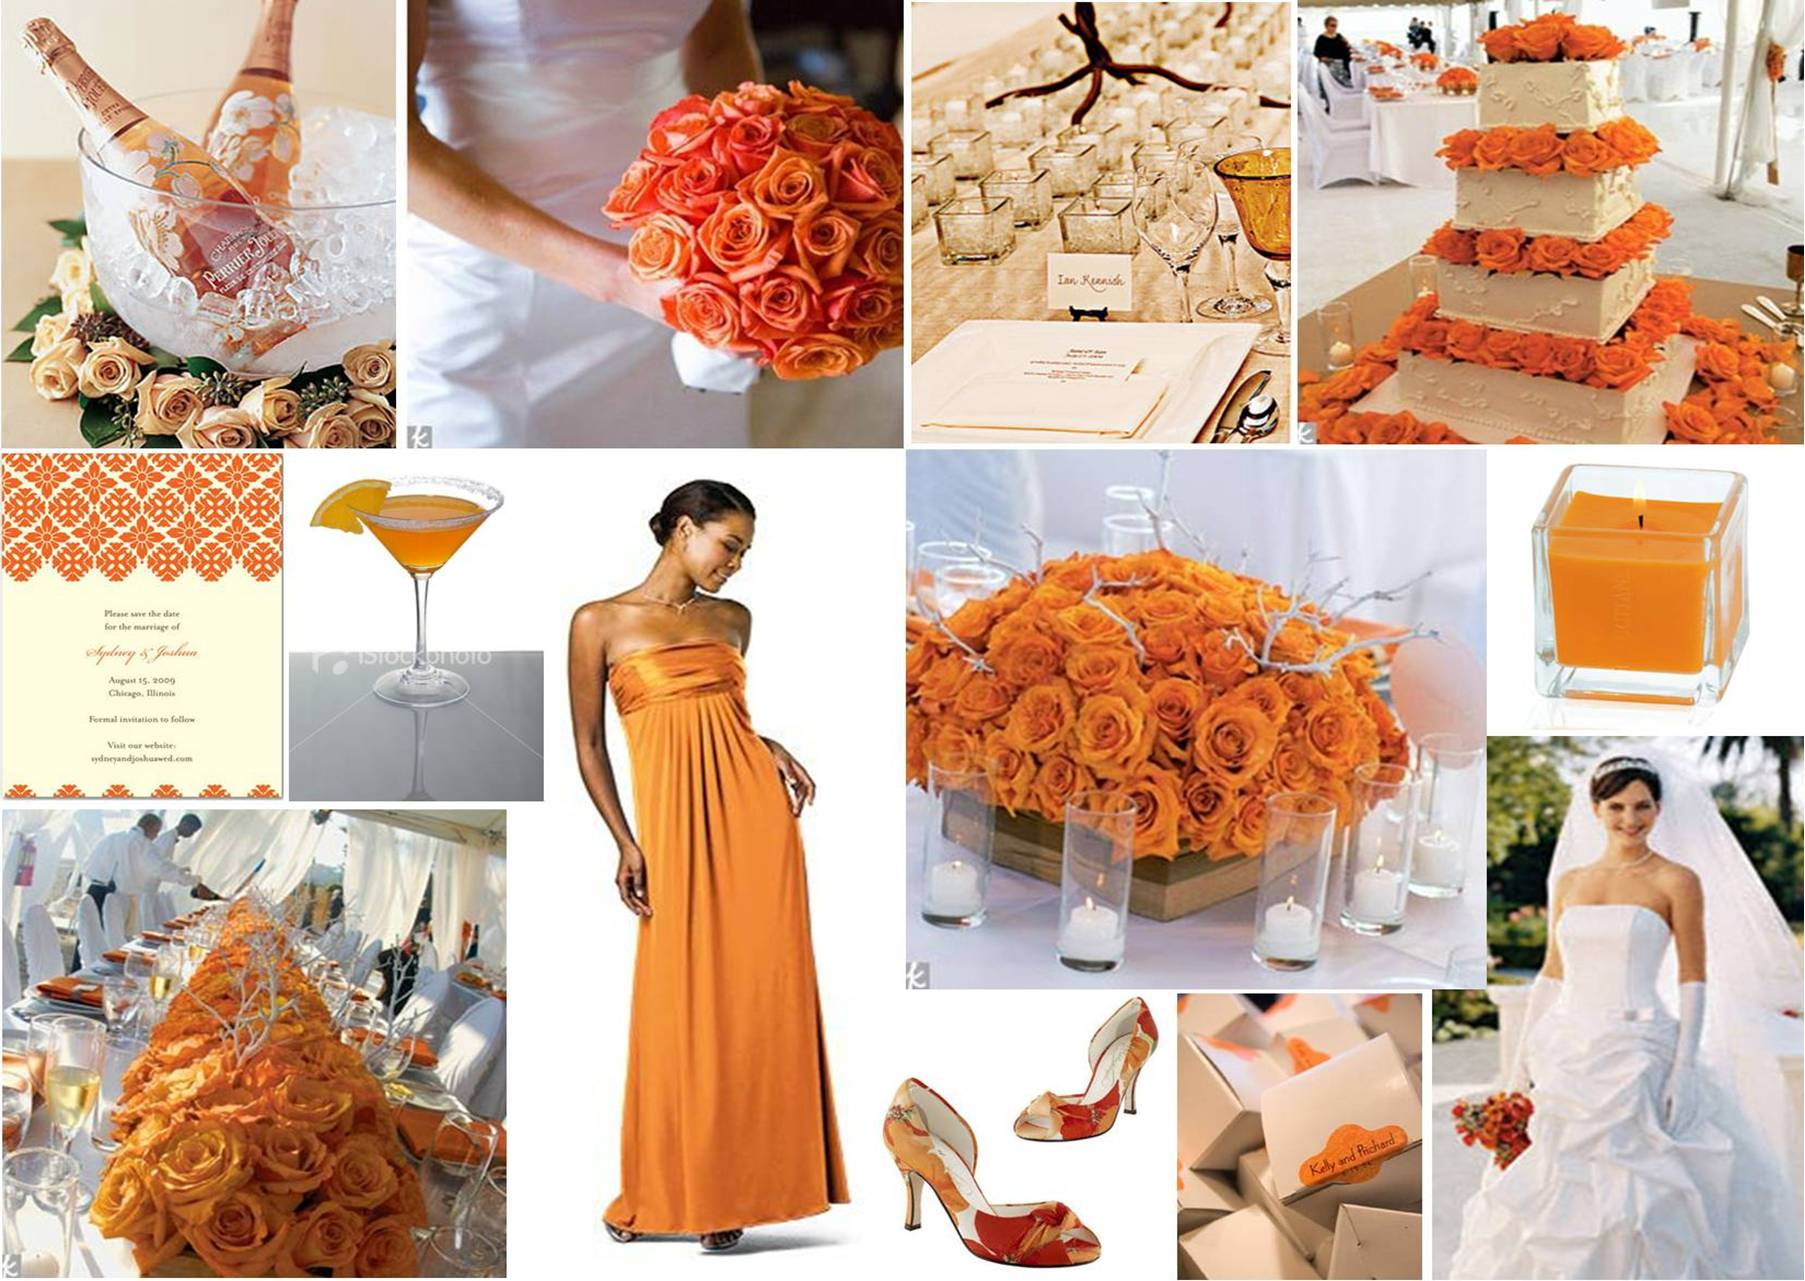 By the orange color theme and the bride's white dress is awesome